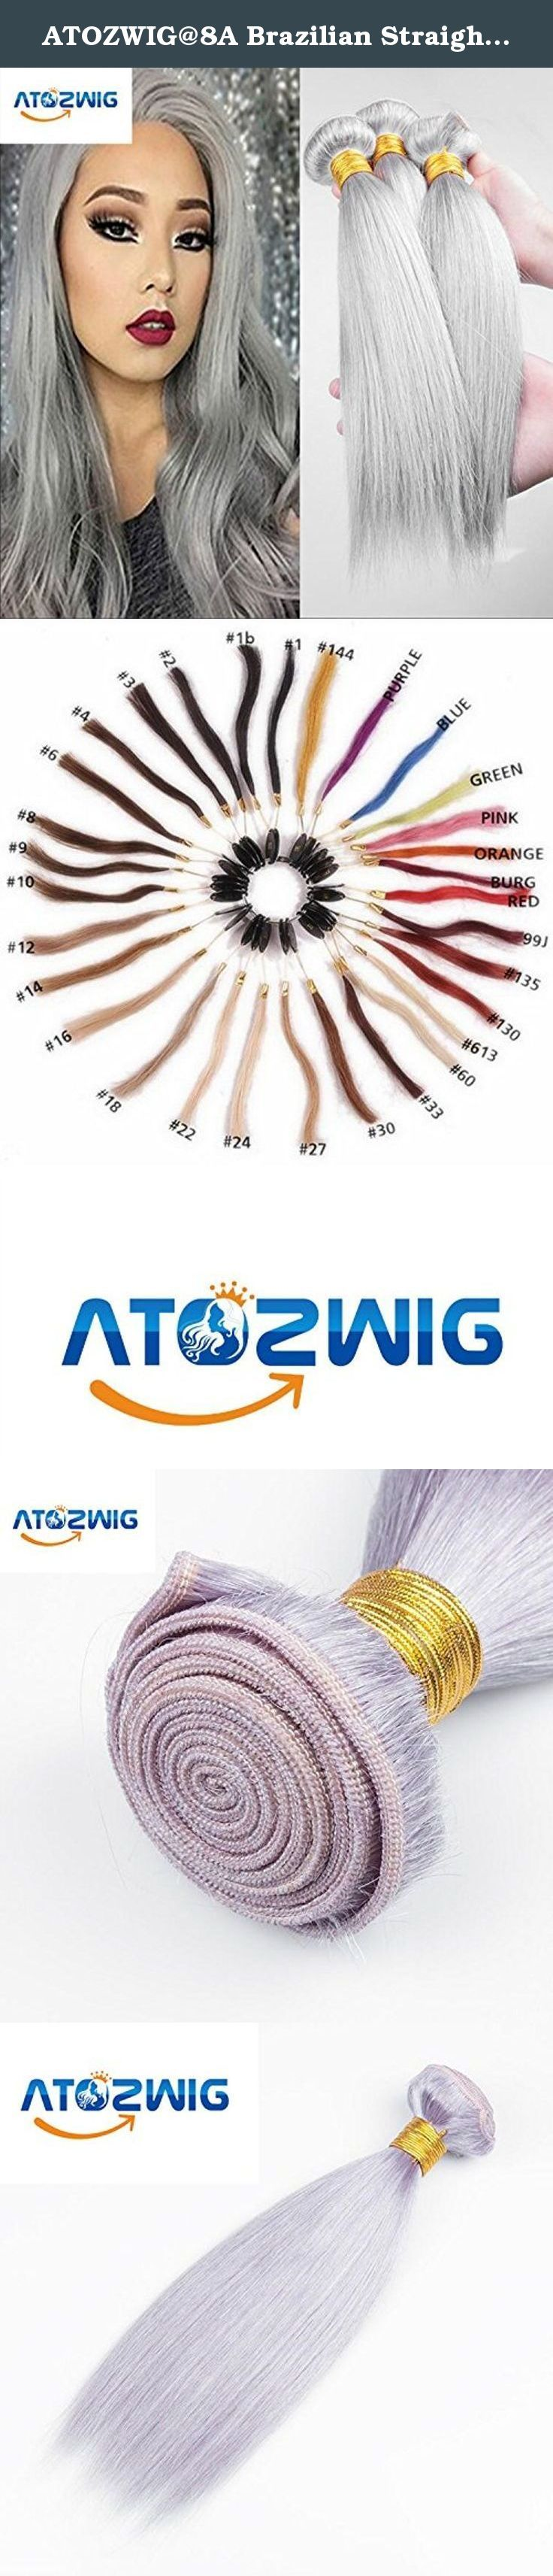 ATOZWIG@8A Brazilian Straight Virgin Hair Platinum Grey hair extension 3Pcs Human Hair Extensions Silver Grey Hair Weaves Fast Shipping 50G/Bundle. We carry only 100% RAW Virgin human hair collected from around the world. It is then shipped to our own factory where it is assembled and packaged. This is how we are able to provide a product with the strictest quality standards for an unbeatable price. Our REAL TRUE Virgin human hair is completely natural and no chemical processes are used…